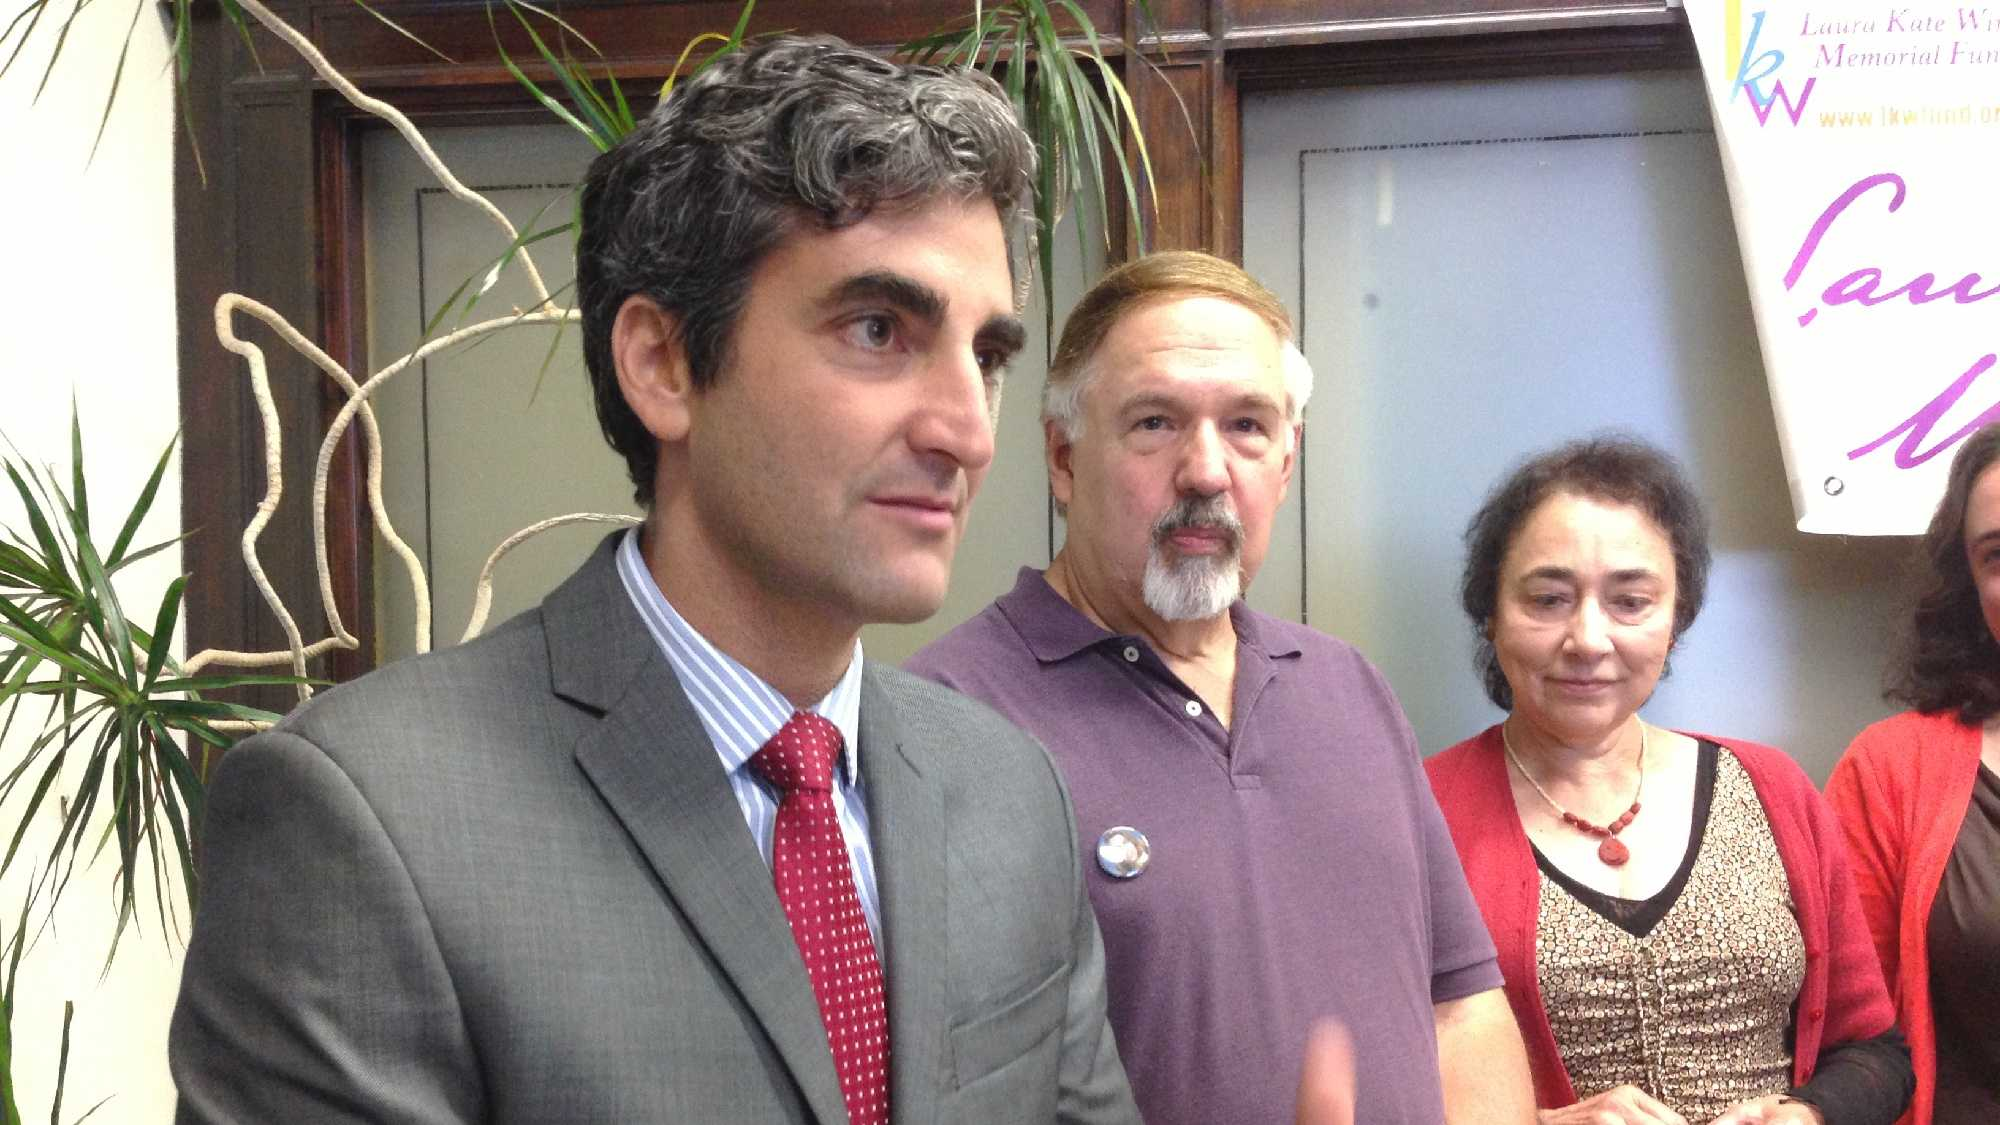 Mayor Miro Weinberger stands with Laura Winterbottom's parents, Ned and JoAnn. Laura, who would have been 40 today, was murdered in 2005. Weinberger is urging public participation in Saturday's charity walk/run to raise money for trio of causes Laura admired.